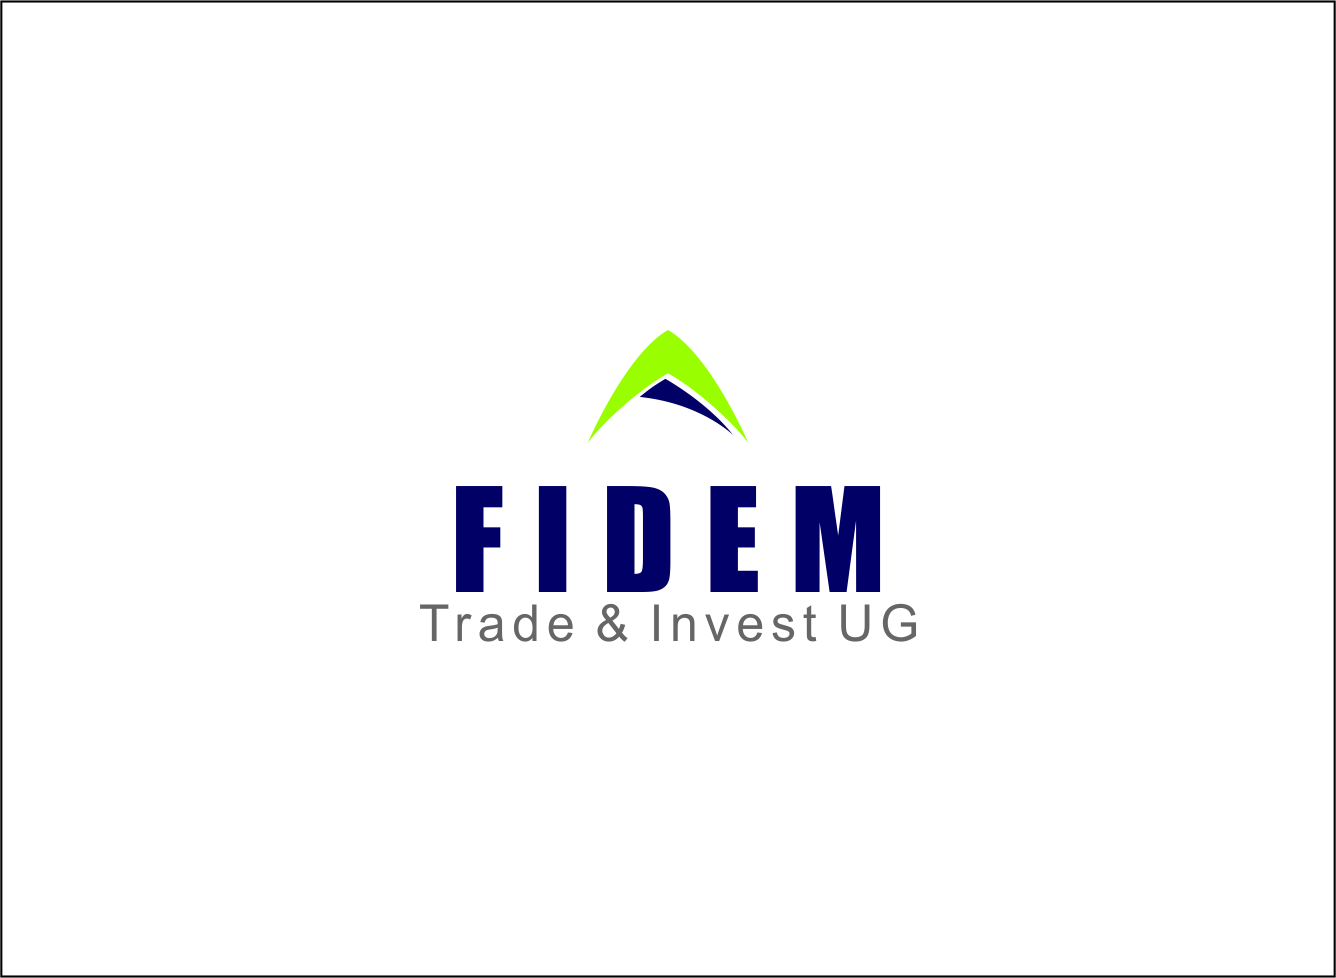 Logo Design by Agus Martoyo - Entry No. 145 in the Logo Design Contest Professional Logo Design for FIDEM Trade & Invest UG.